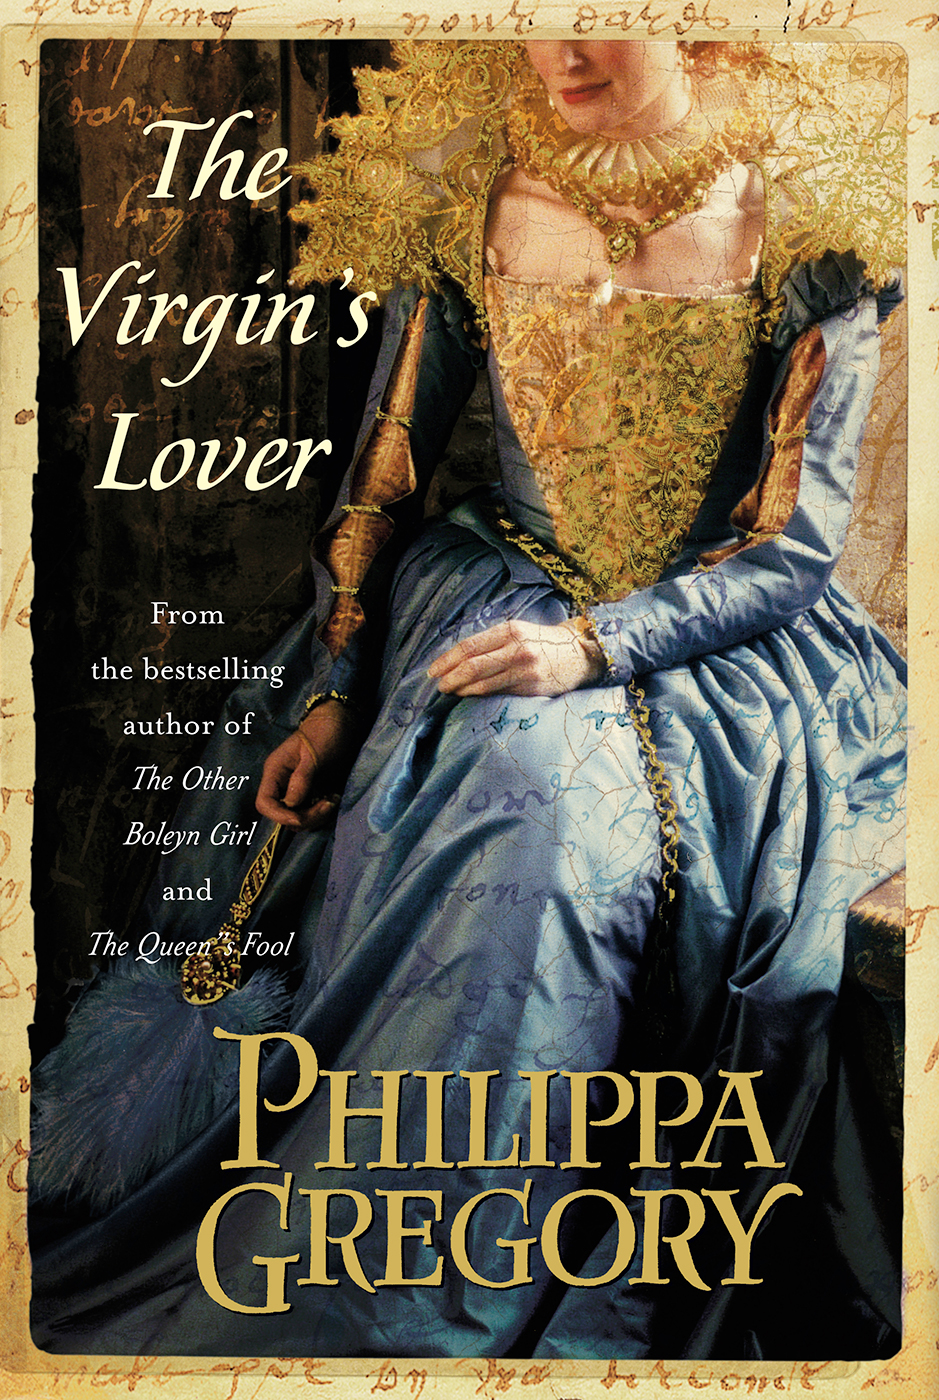 The Virgin's Lover US Cover